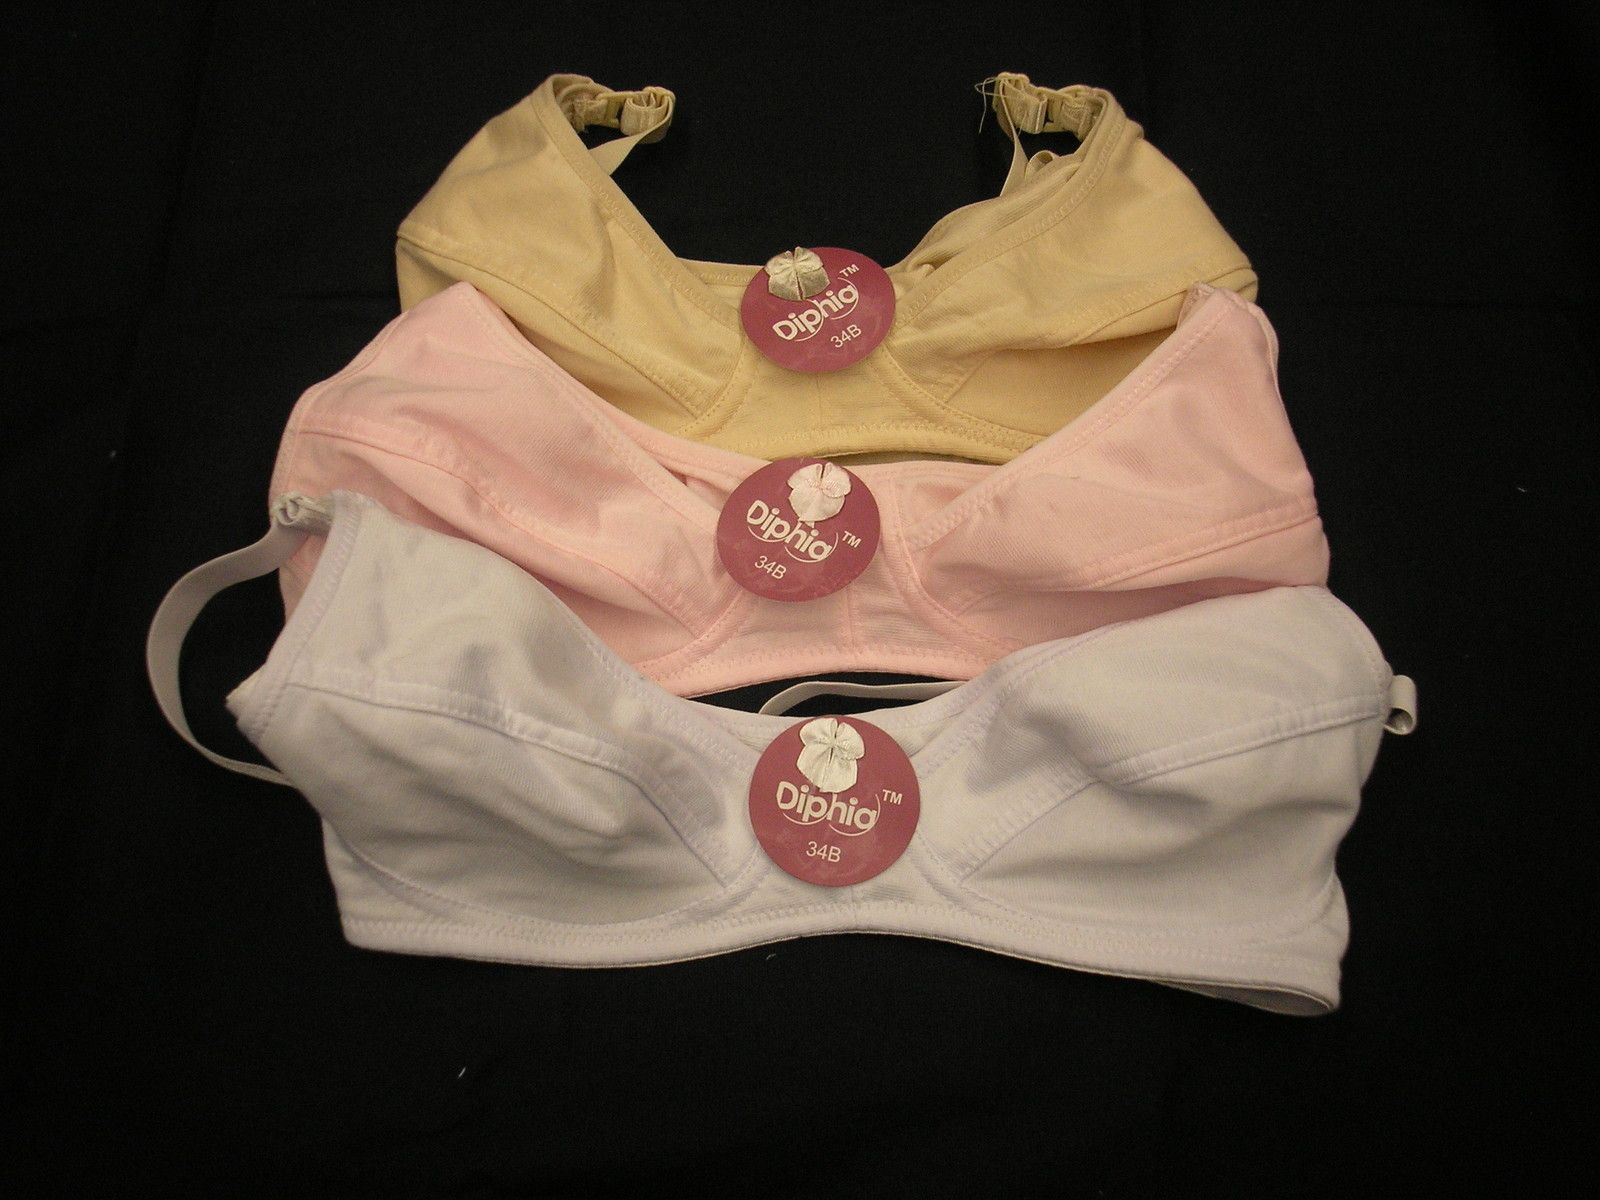 Diphia 3 Pack Maternity Bras only $9.50! (These bras were so affordable, yet comfortable that I would recommend to anyone!)